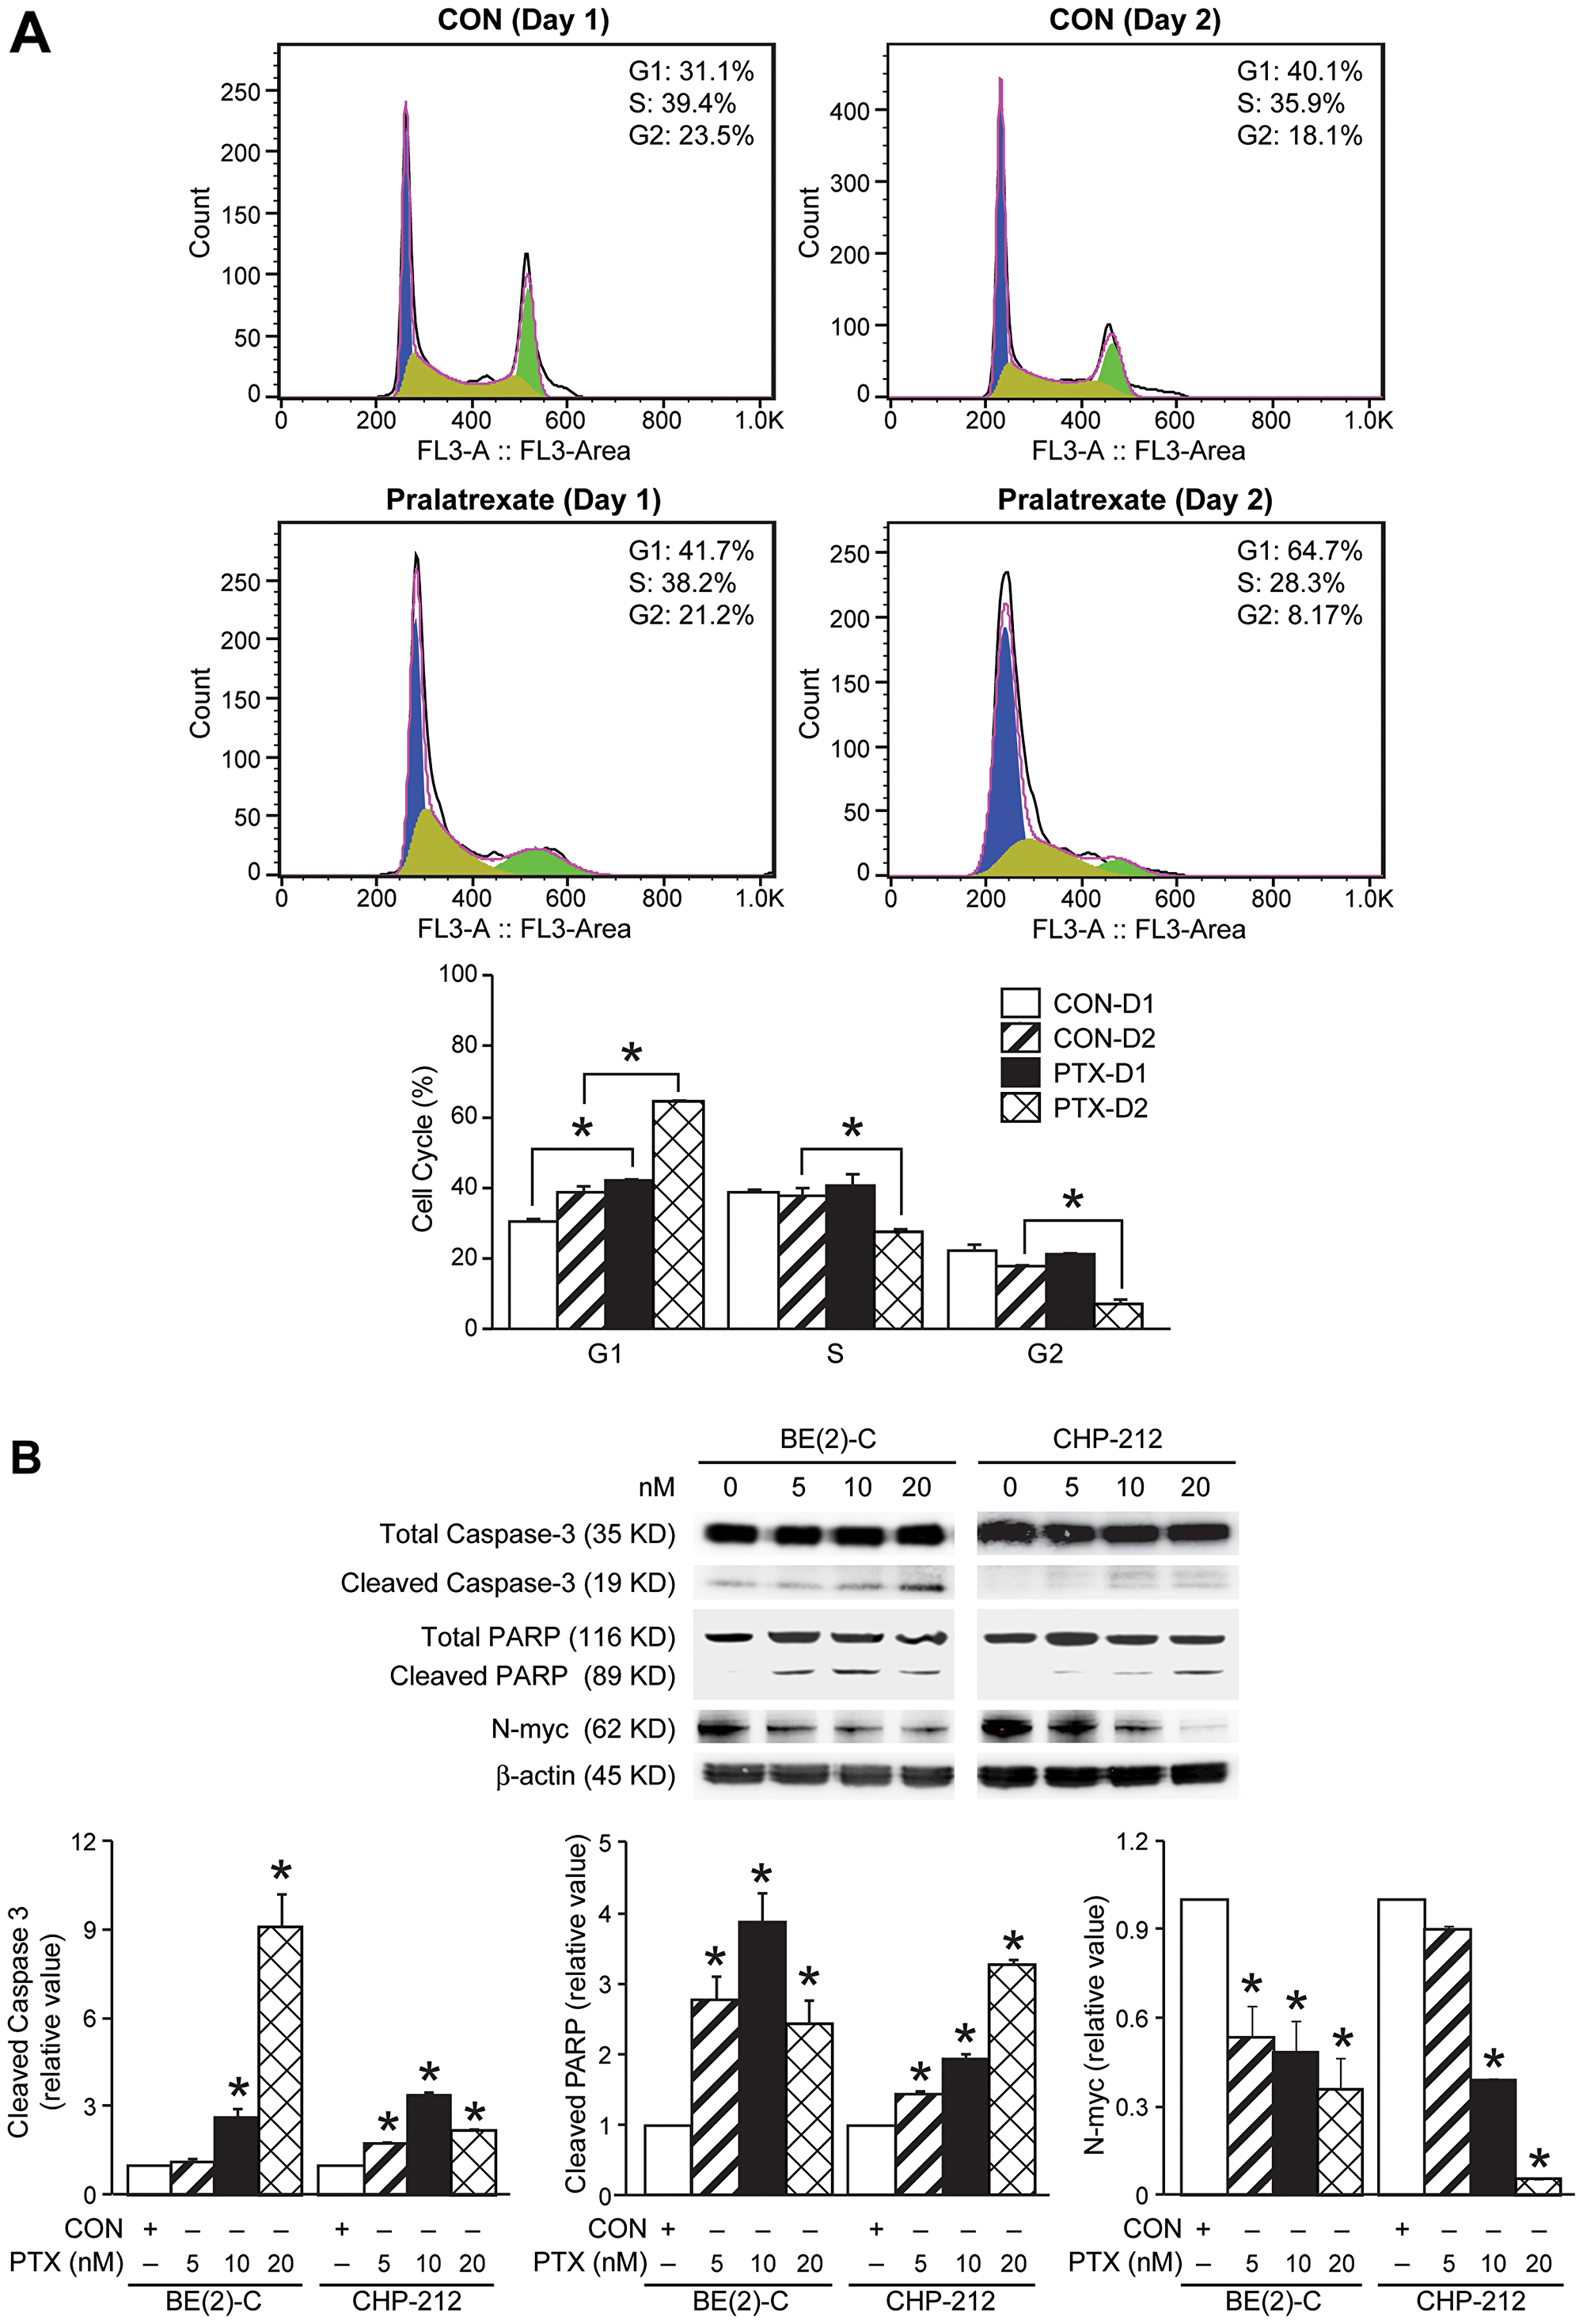 Effects of pralatrexate treatment on caspase-3, PARP, and N-myc protein expression.